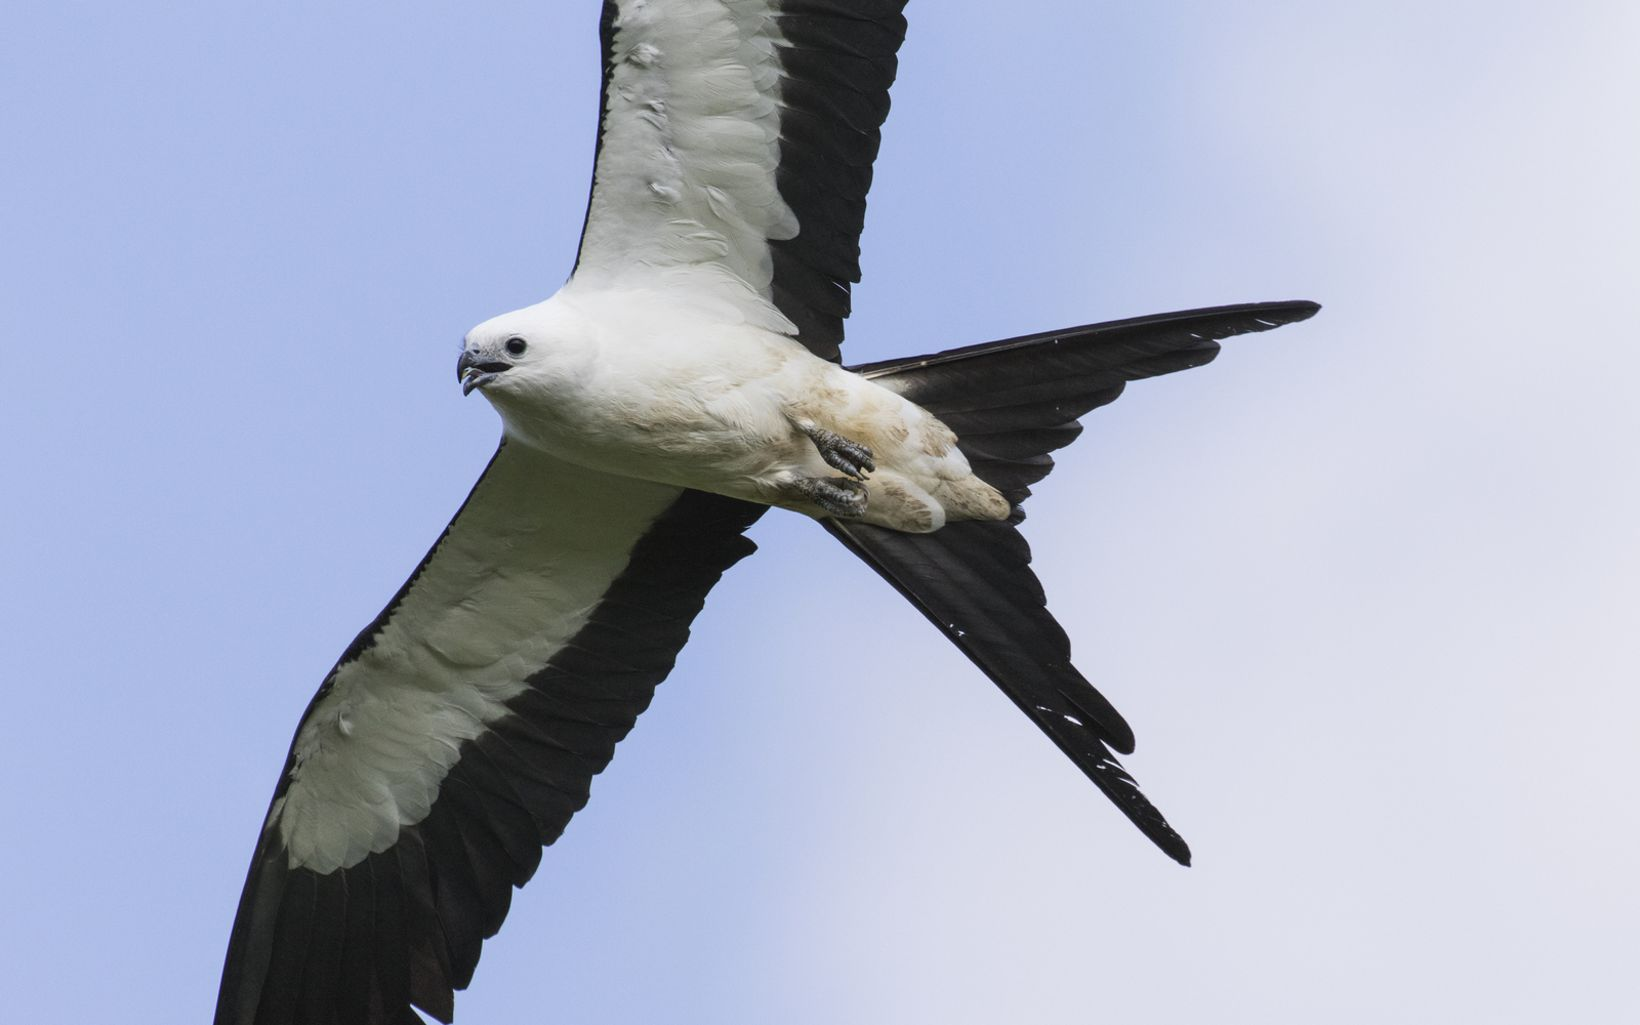 Swallow tailed kites (Elanoides forficatus) often flock to agricultural fields to feed on insects before their migration.